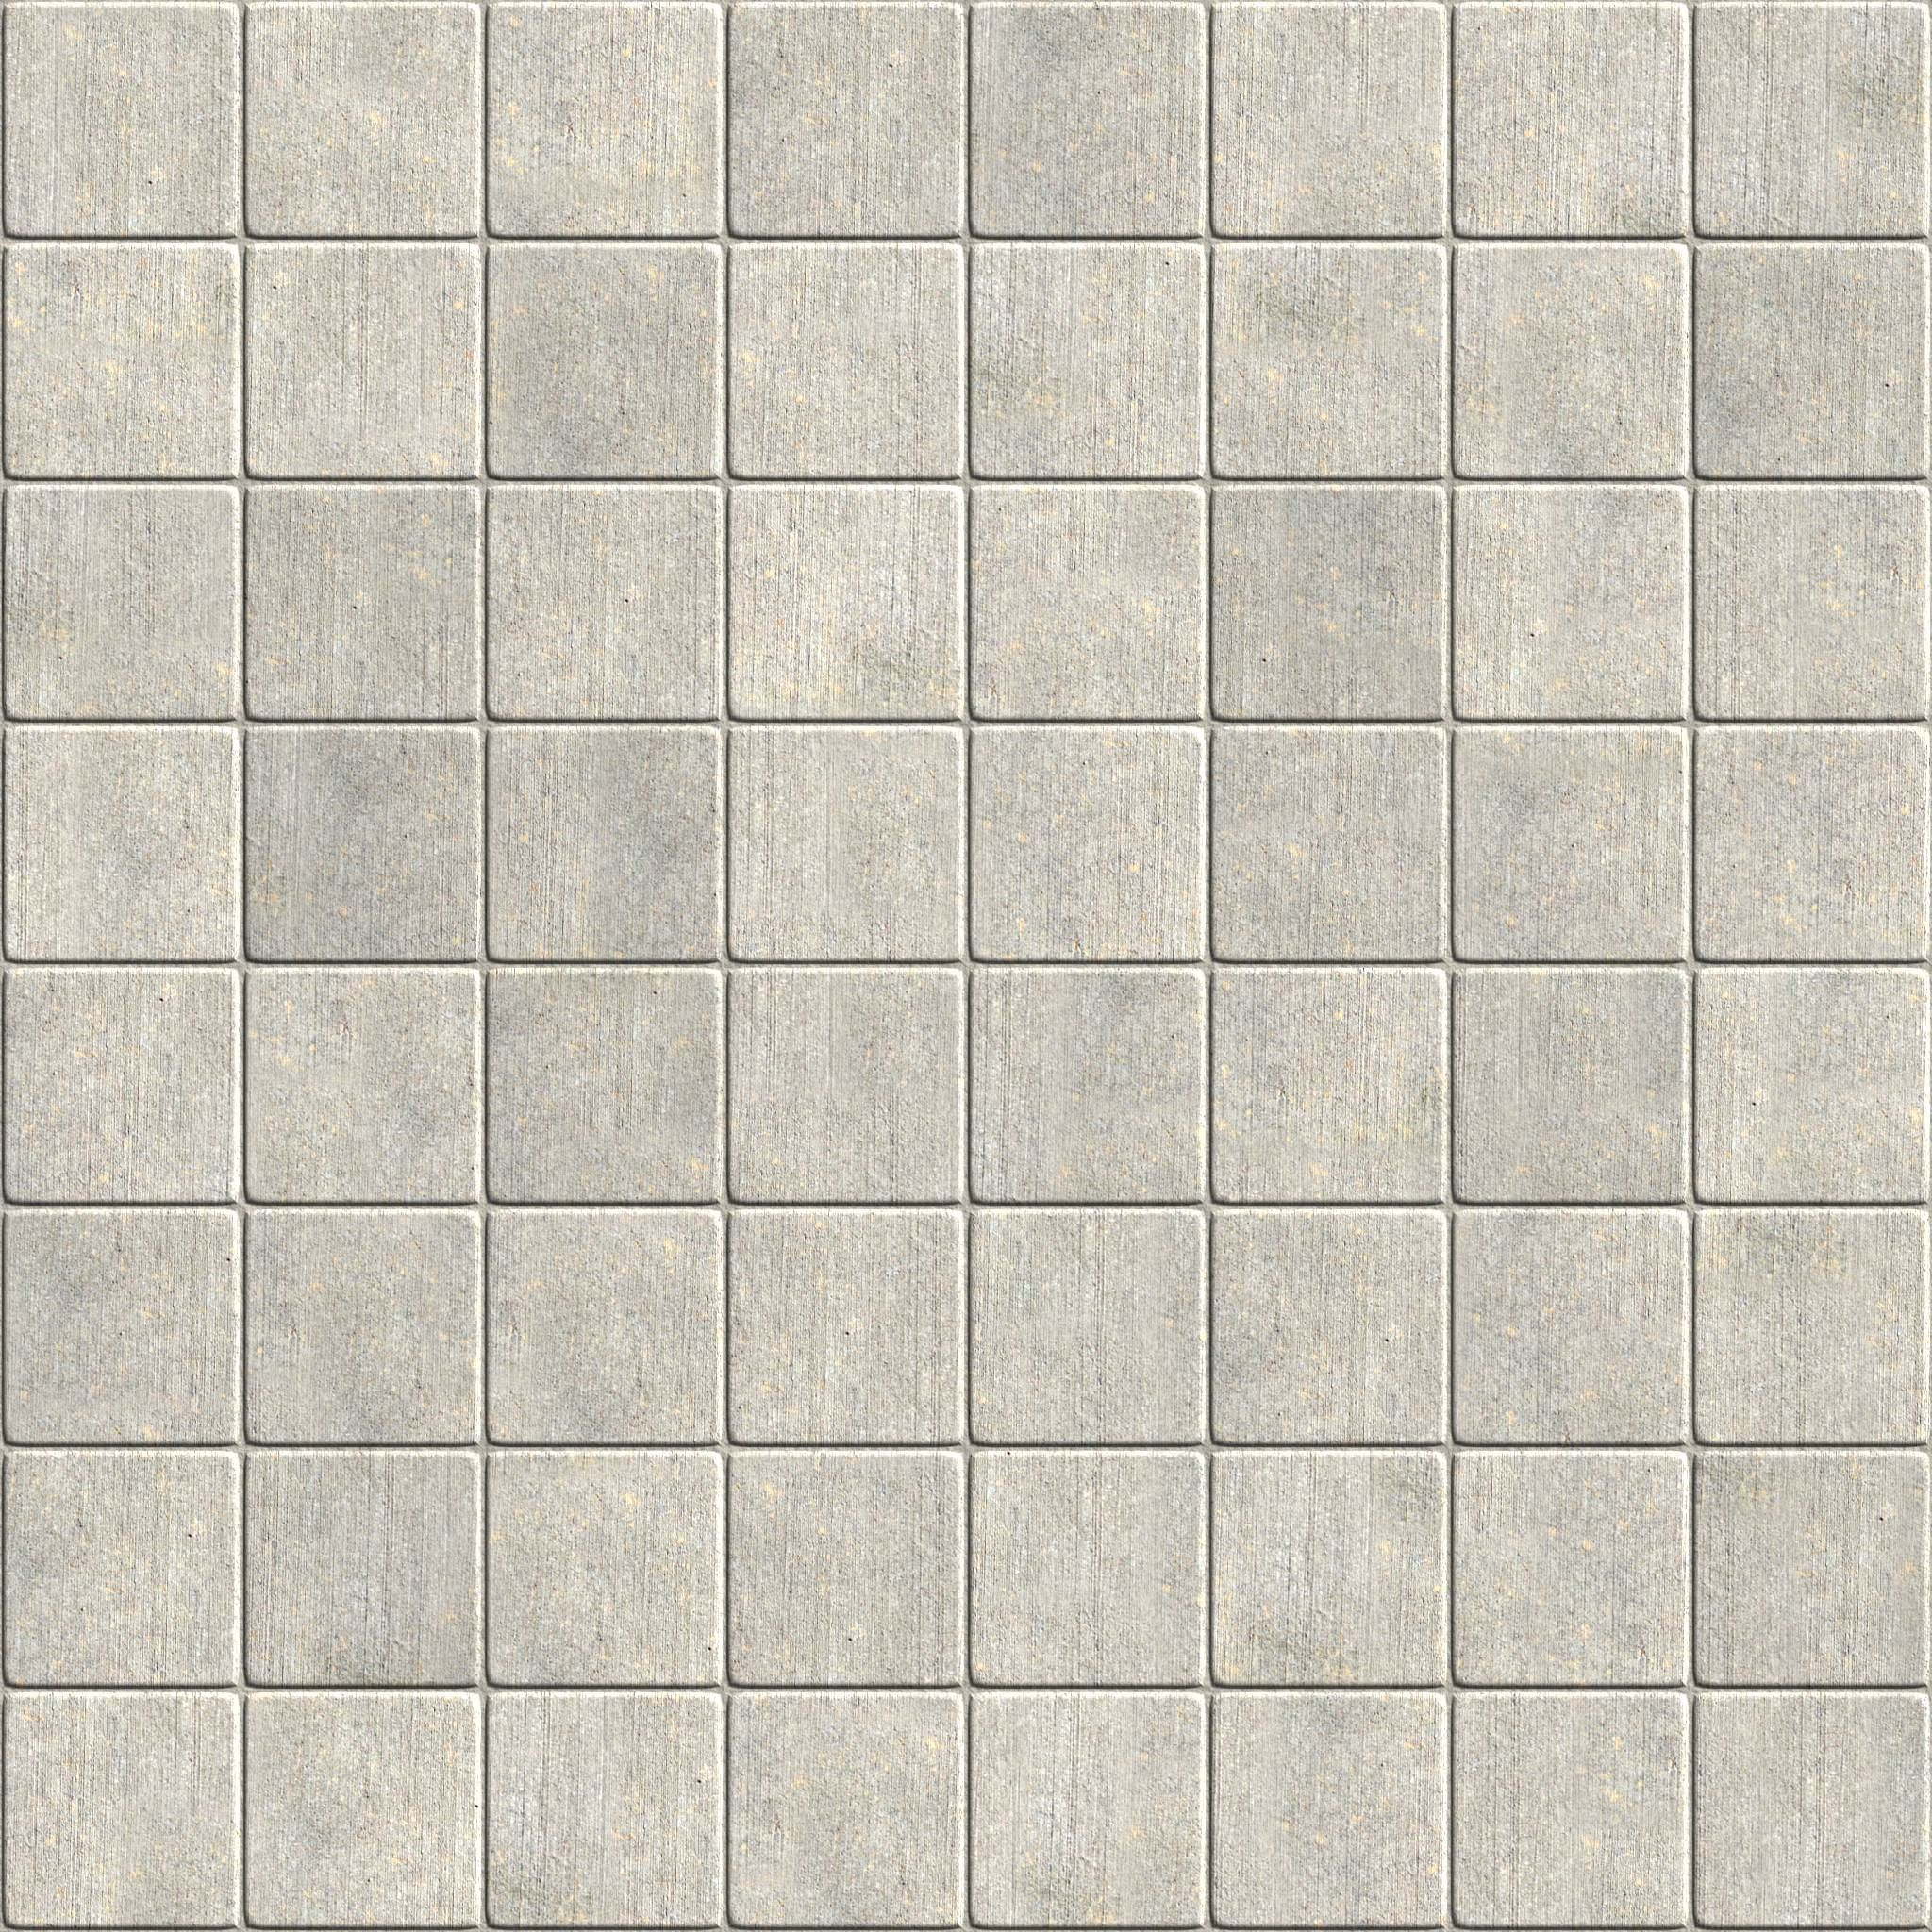 Good Tile Floor Texture Seamless Ideas 619537 Floor Design Part 23